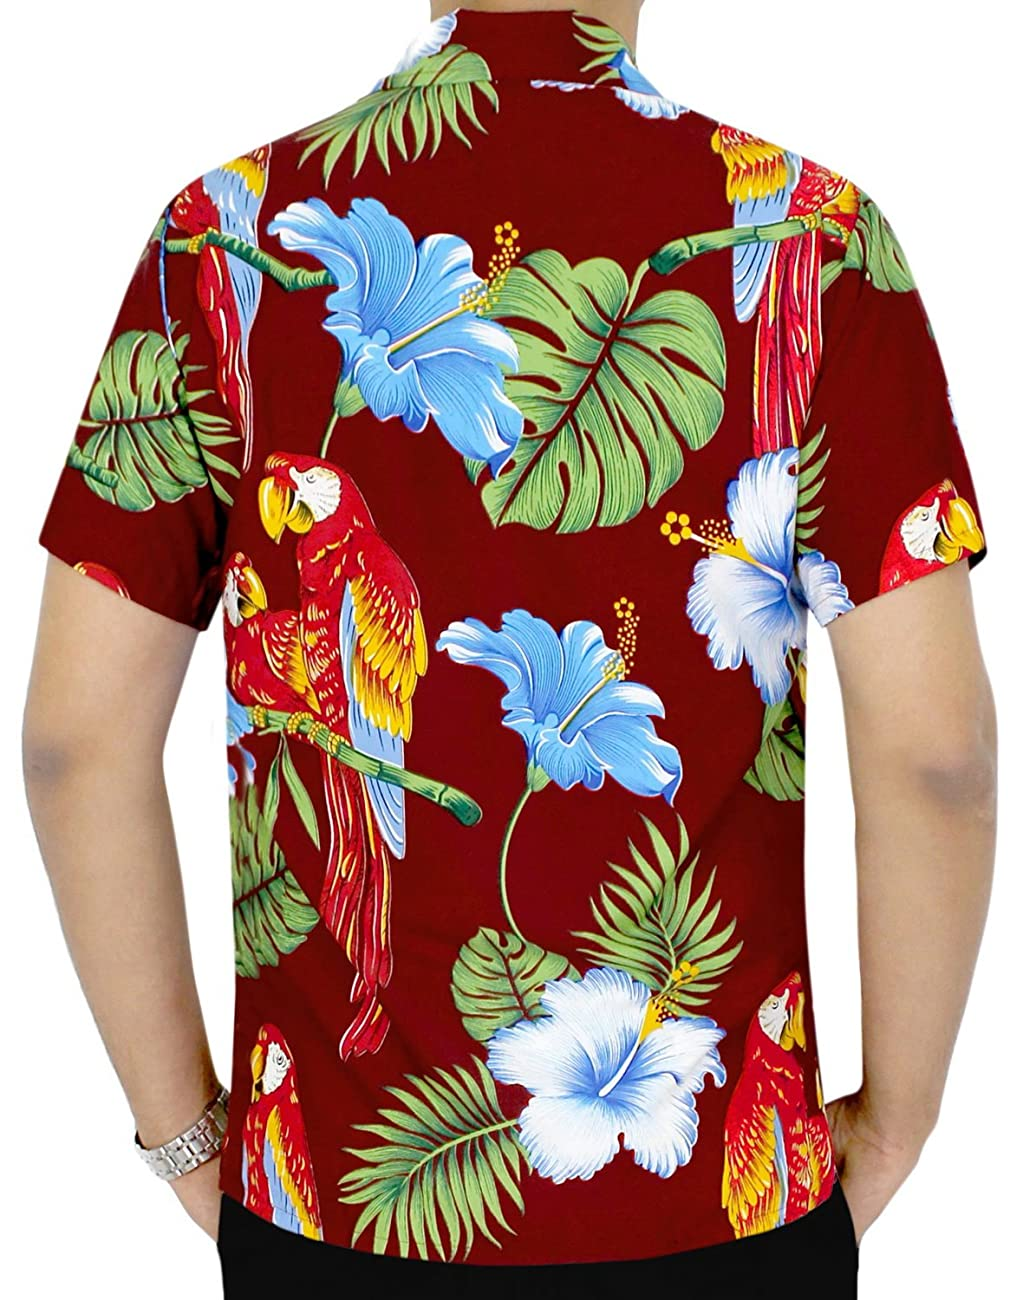 La Leela Hawaiian Shirt For Men Short Sleeve Front-Pocket Printed In Many Colors 1